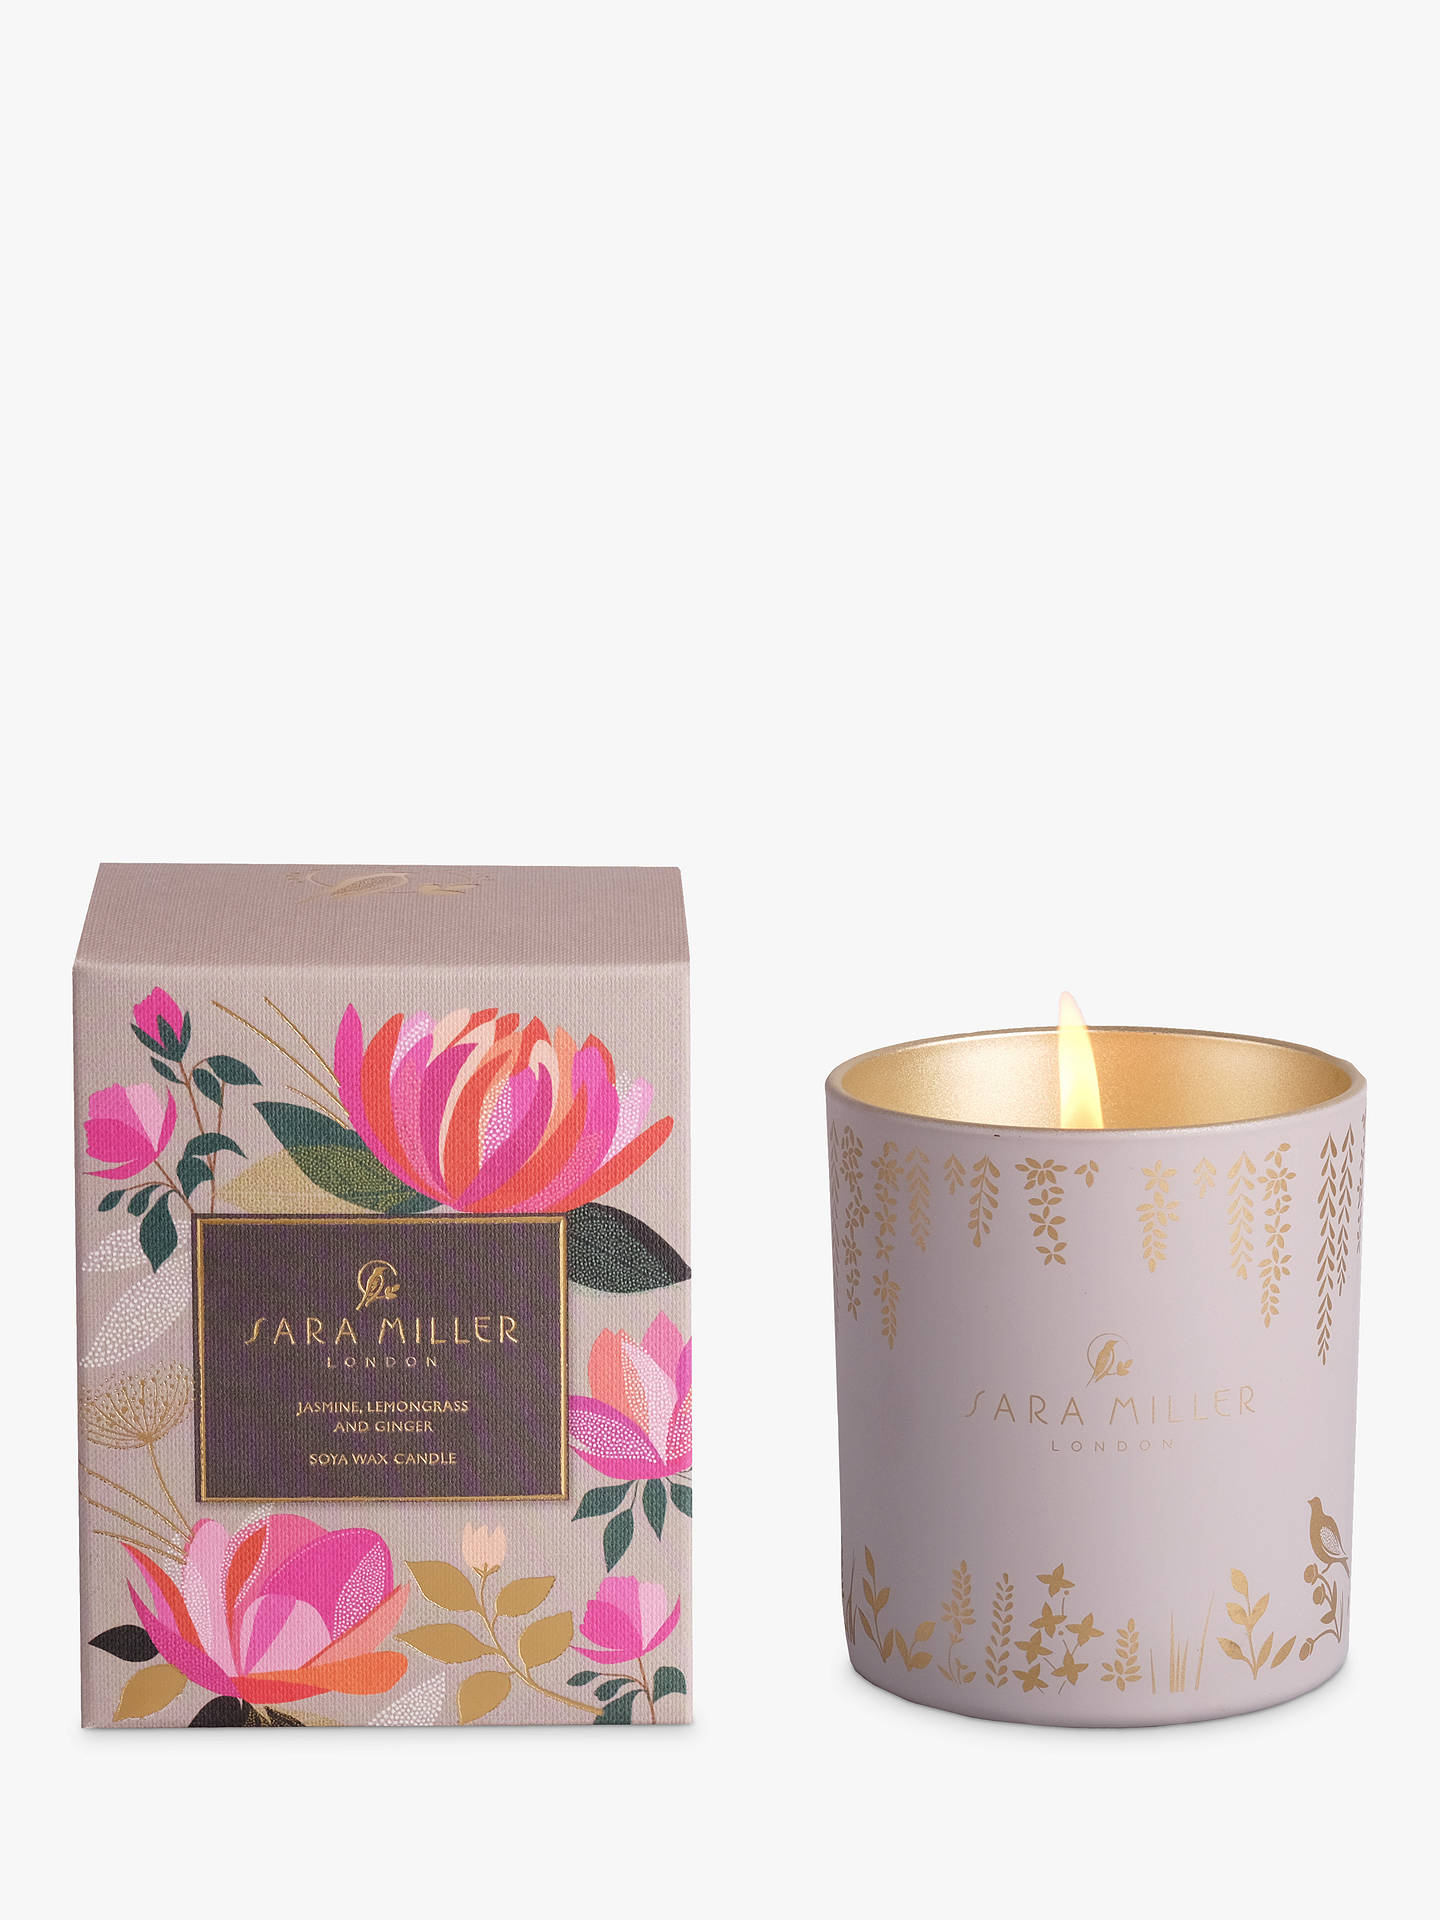 BuySara Miller Jasmine, Lemongrass and Ginger Scented Candle Online at johnlewis.com